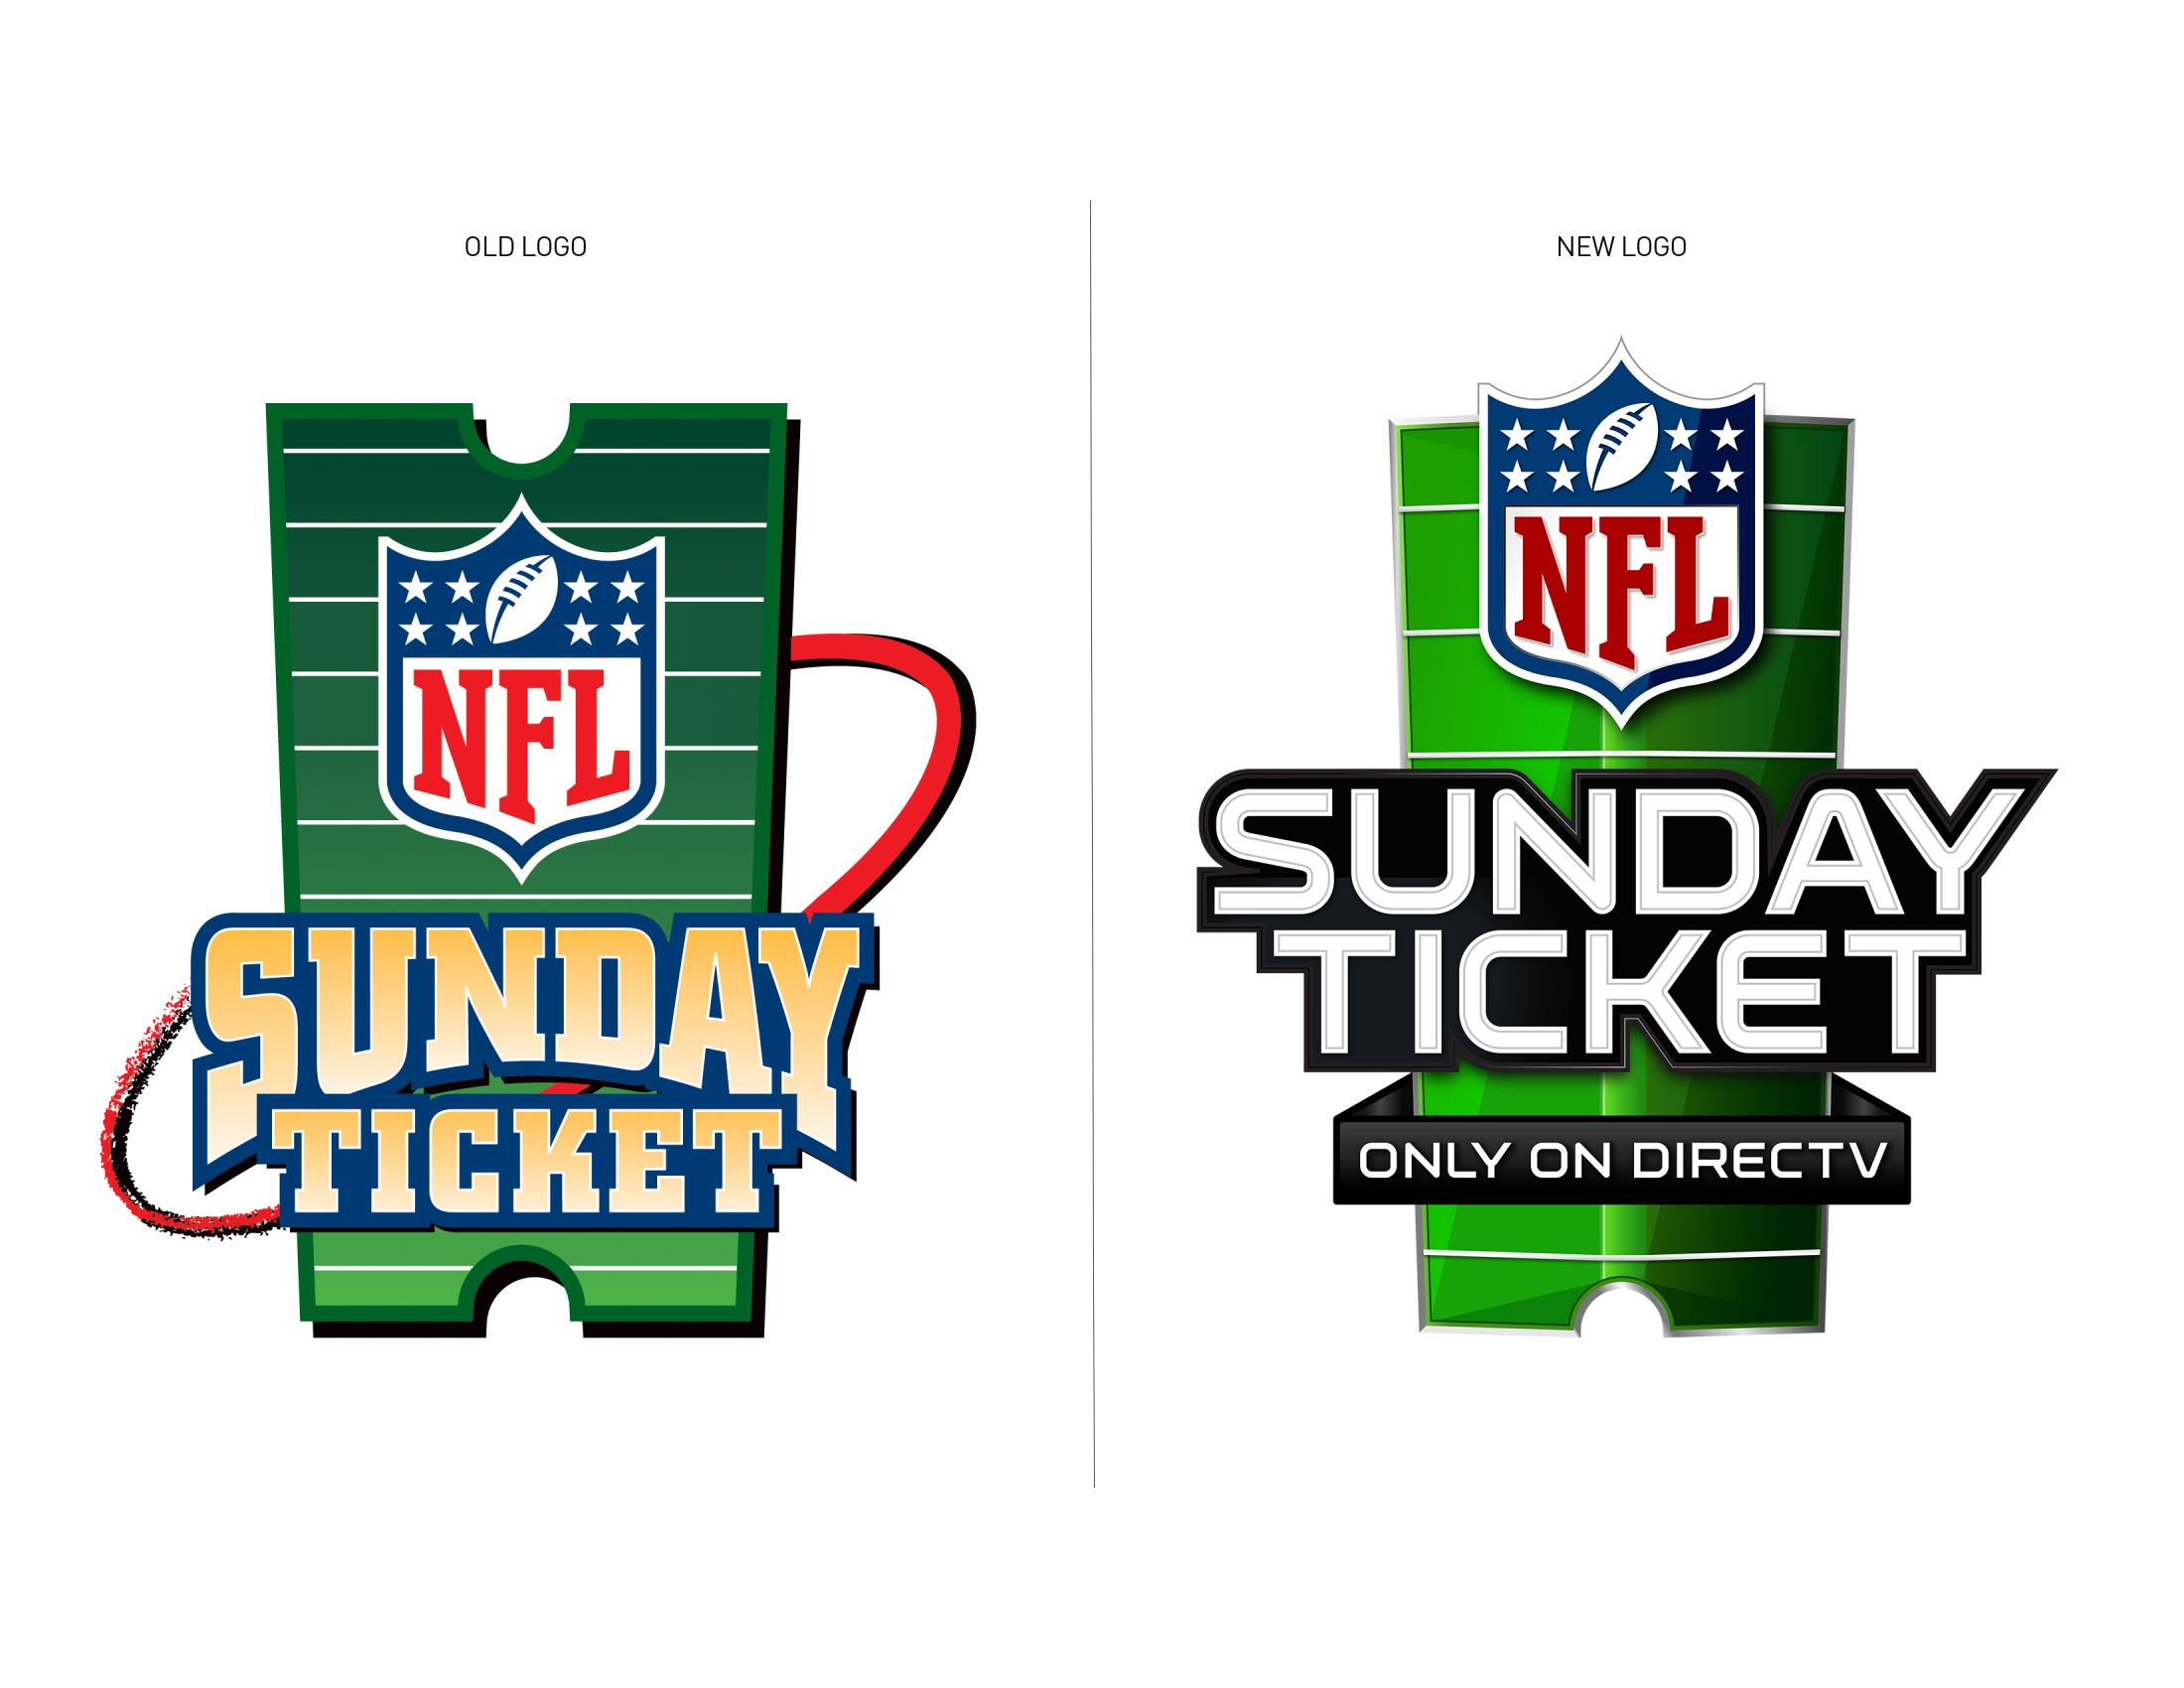 directv nfl sunday ticket on directv logo redesign clios rh clios com nfl sunday ticket login in nfl sunday ticket login online